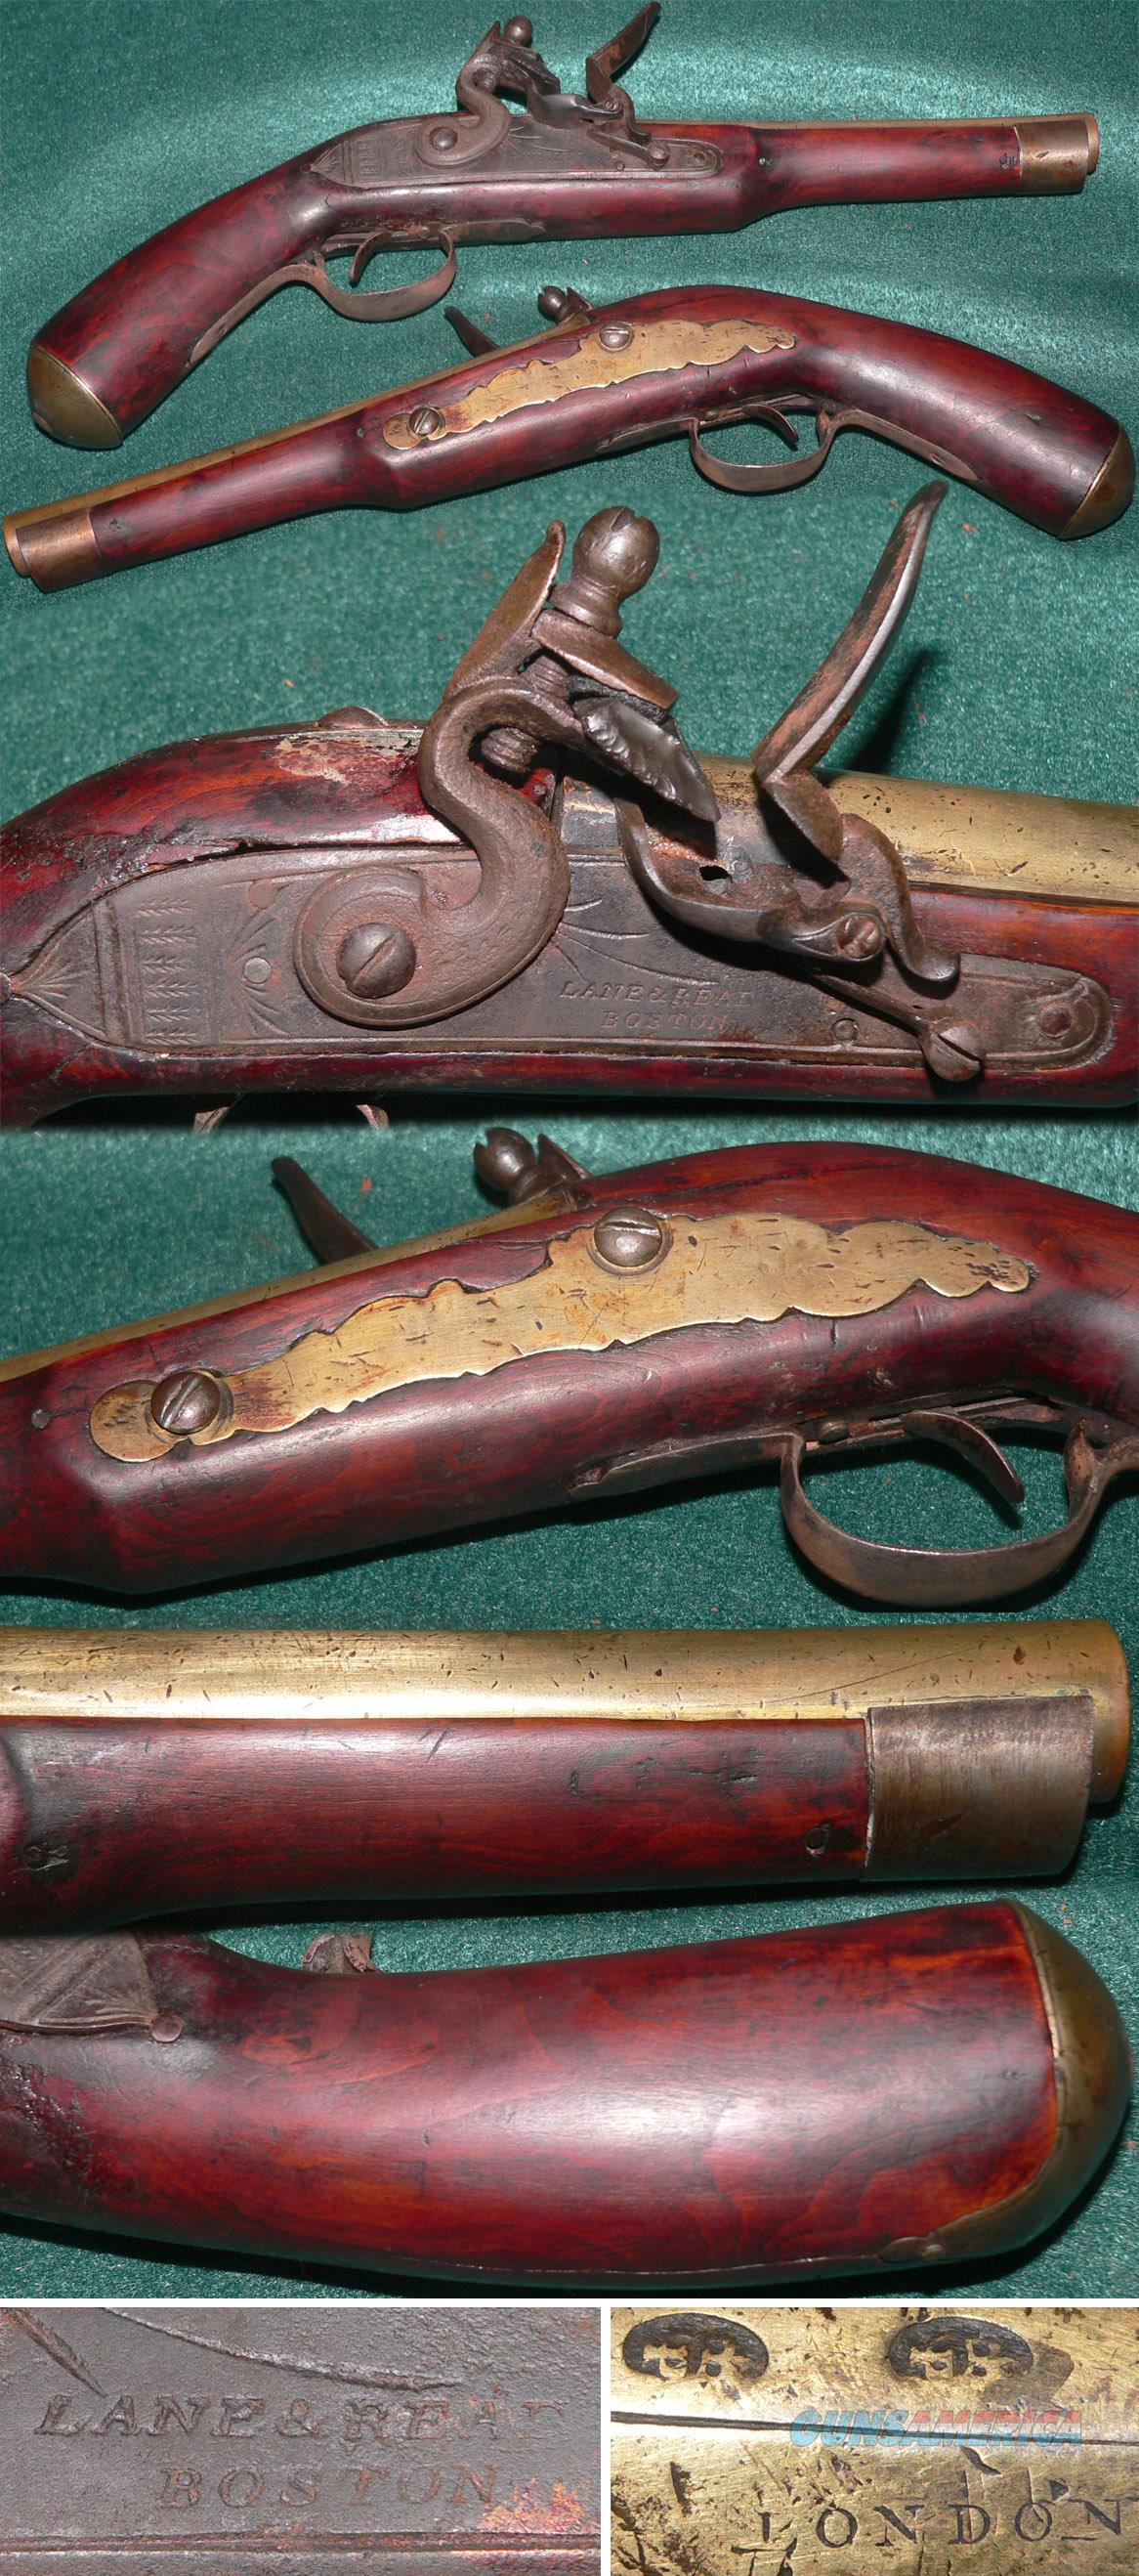 Flintlock reconversion belt pistol by Lane & Read, Boston  Guns > Pistols > Muzzleloading Pre-1899 Pistols (flint)